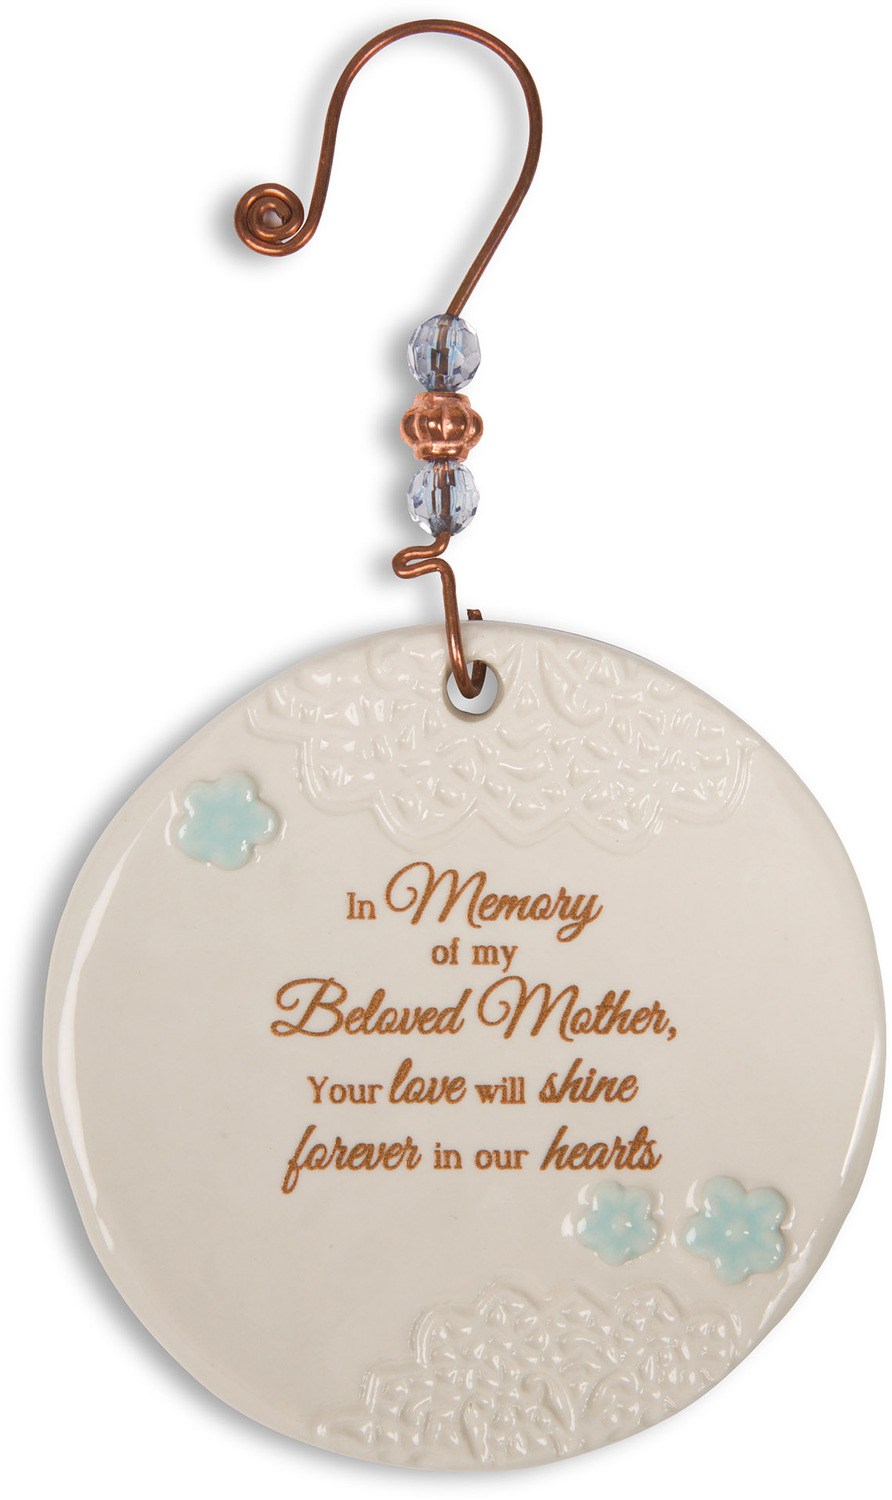 Beloved mother 3 5 ceramic ornament light your way - Ornament tapete weiay ...